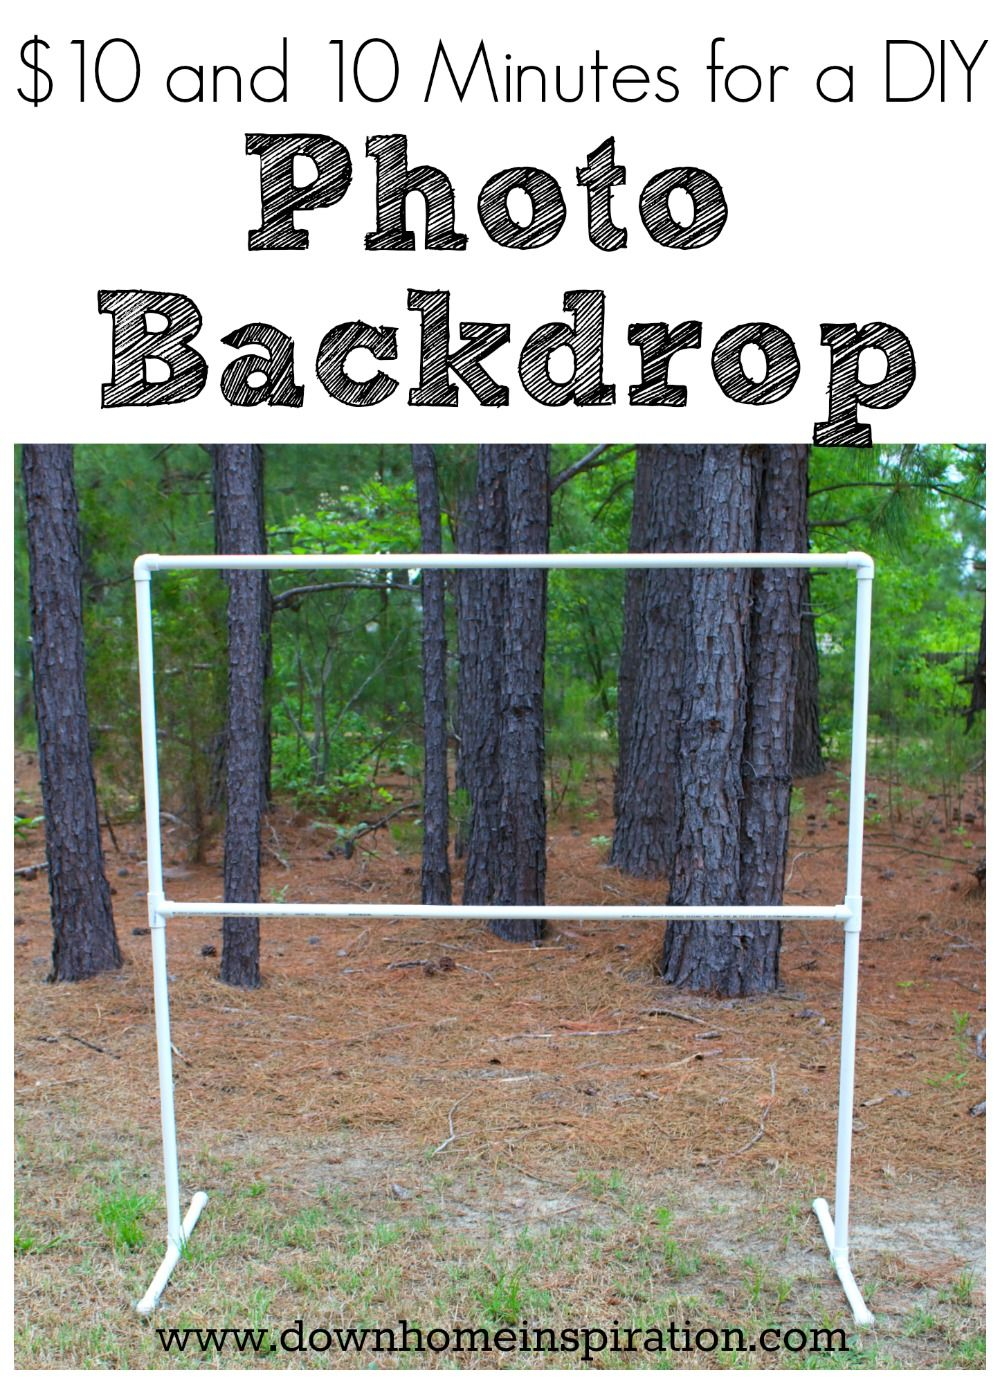 10 and 10 Minutes for a DIY Photo Backdrop Diy photo